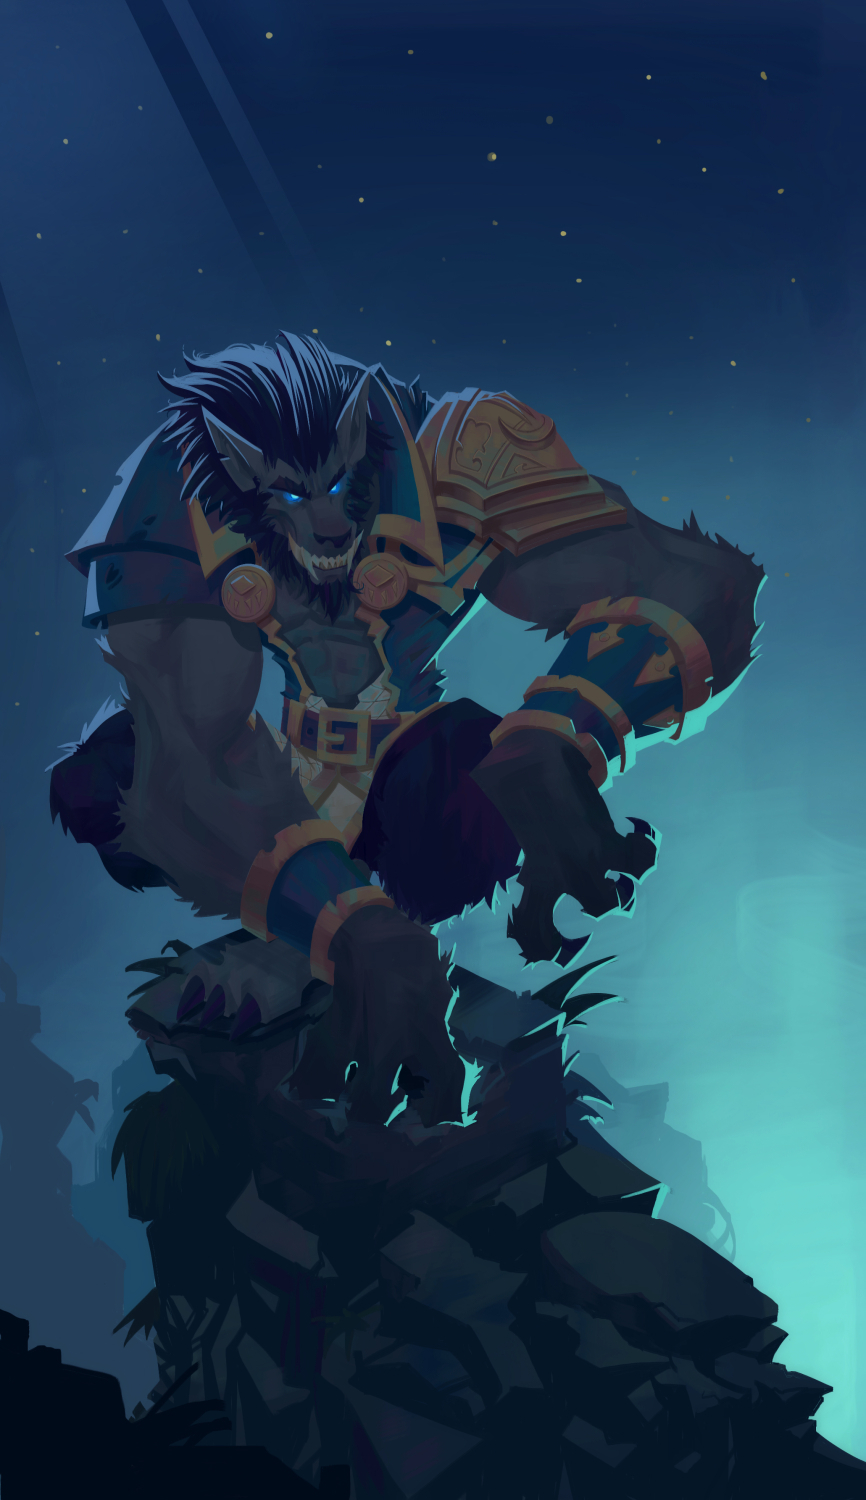 Genn Greymane fan art on Behance - 694.7KB